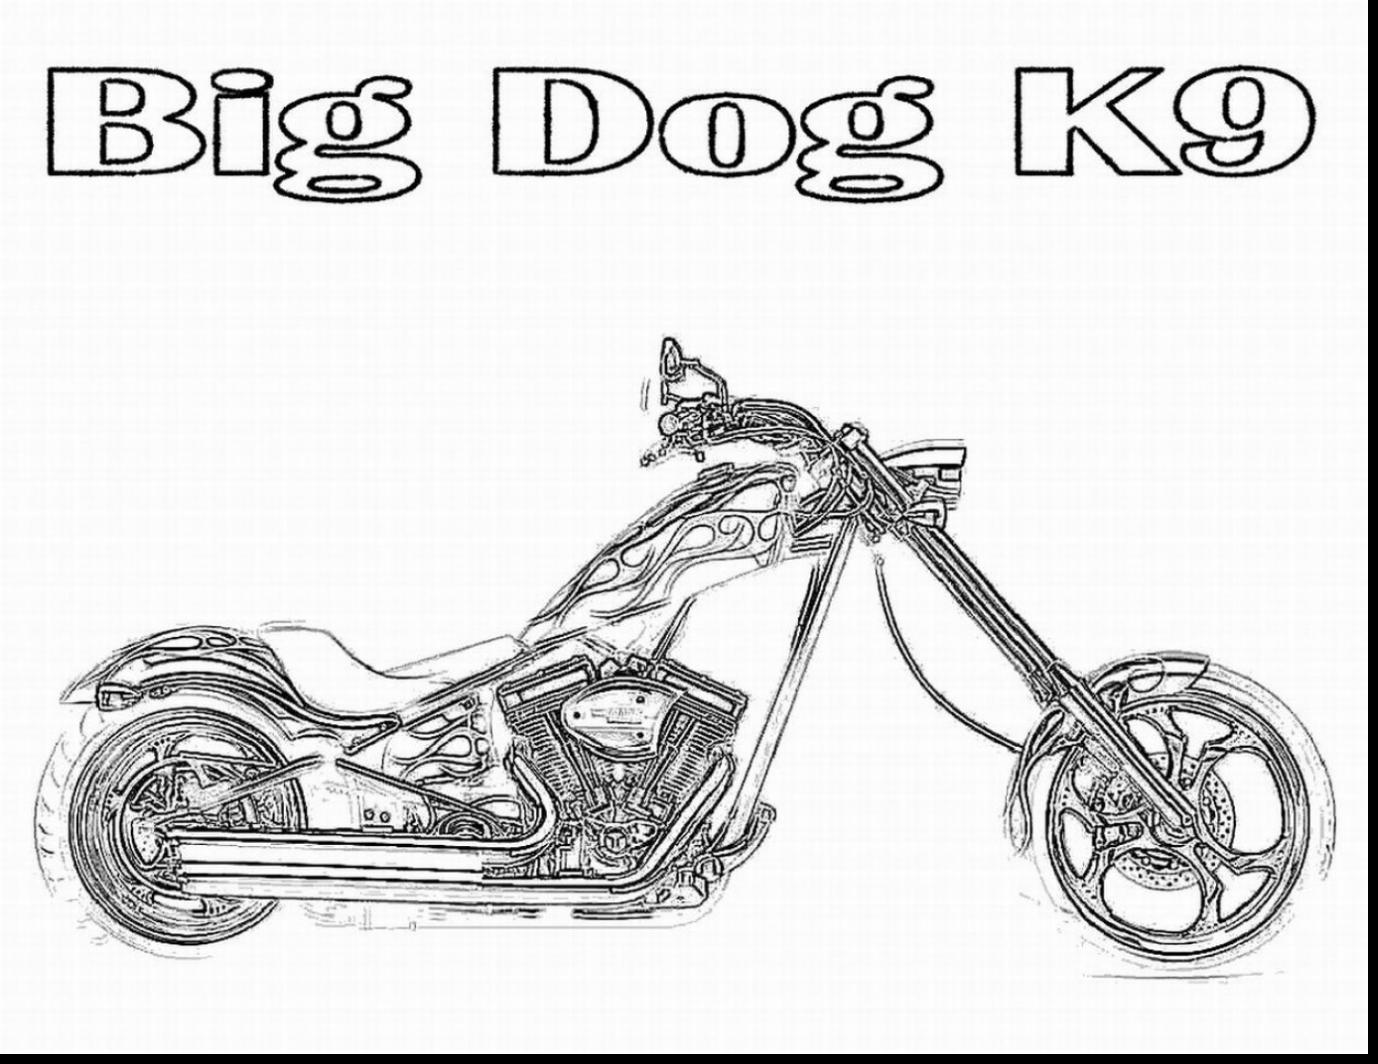 Remarkable Big Rig Trucks Coloring Pages Printable With Hot Rod